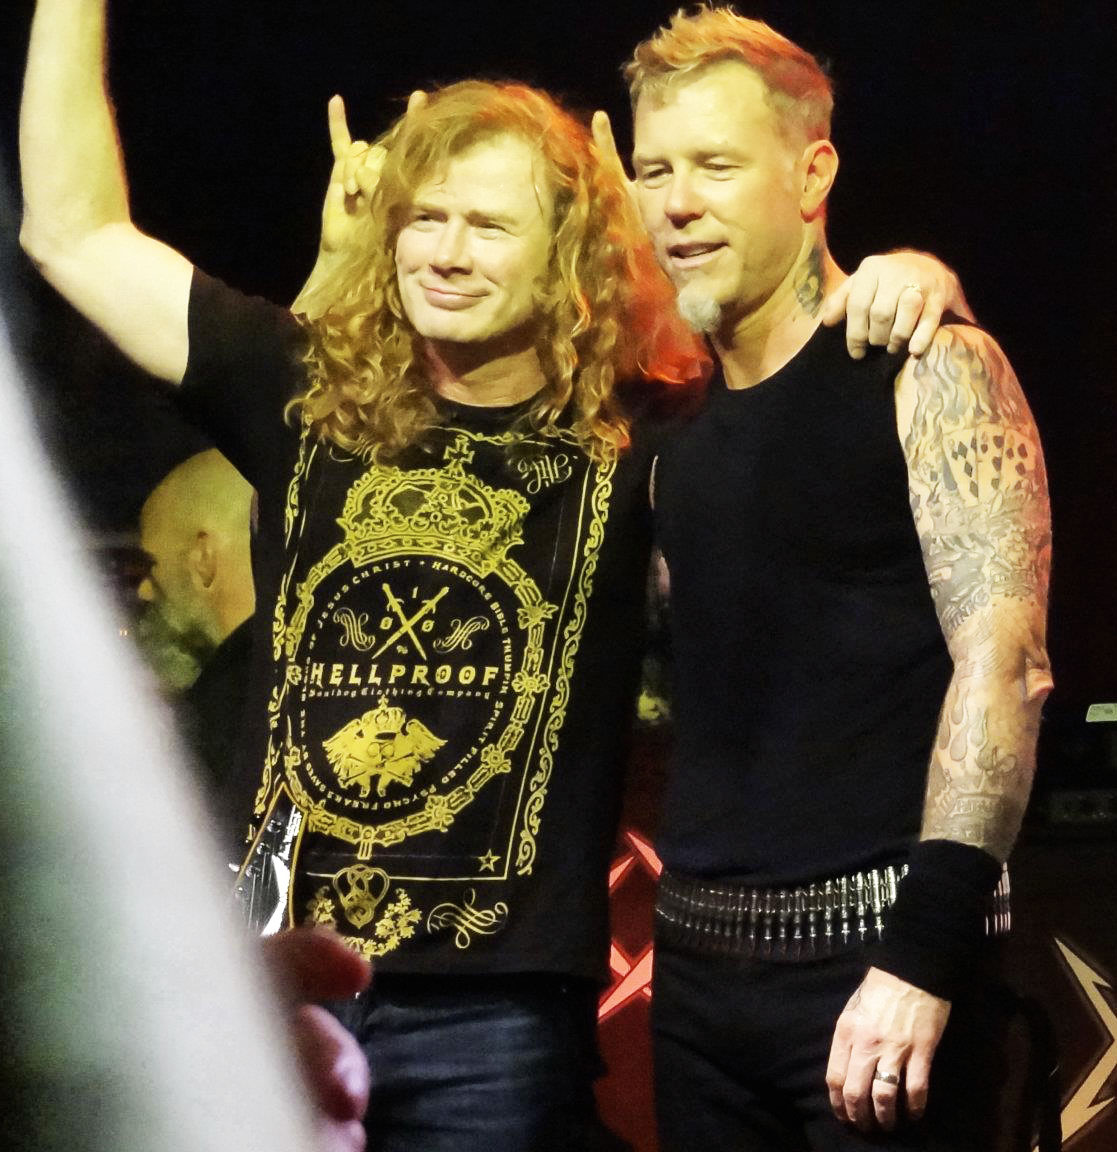 Dave Mustaine Metallica Reunion Metallica And Dave Mustaine